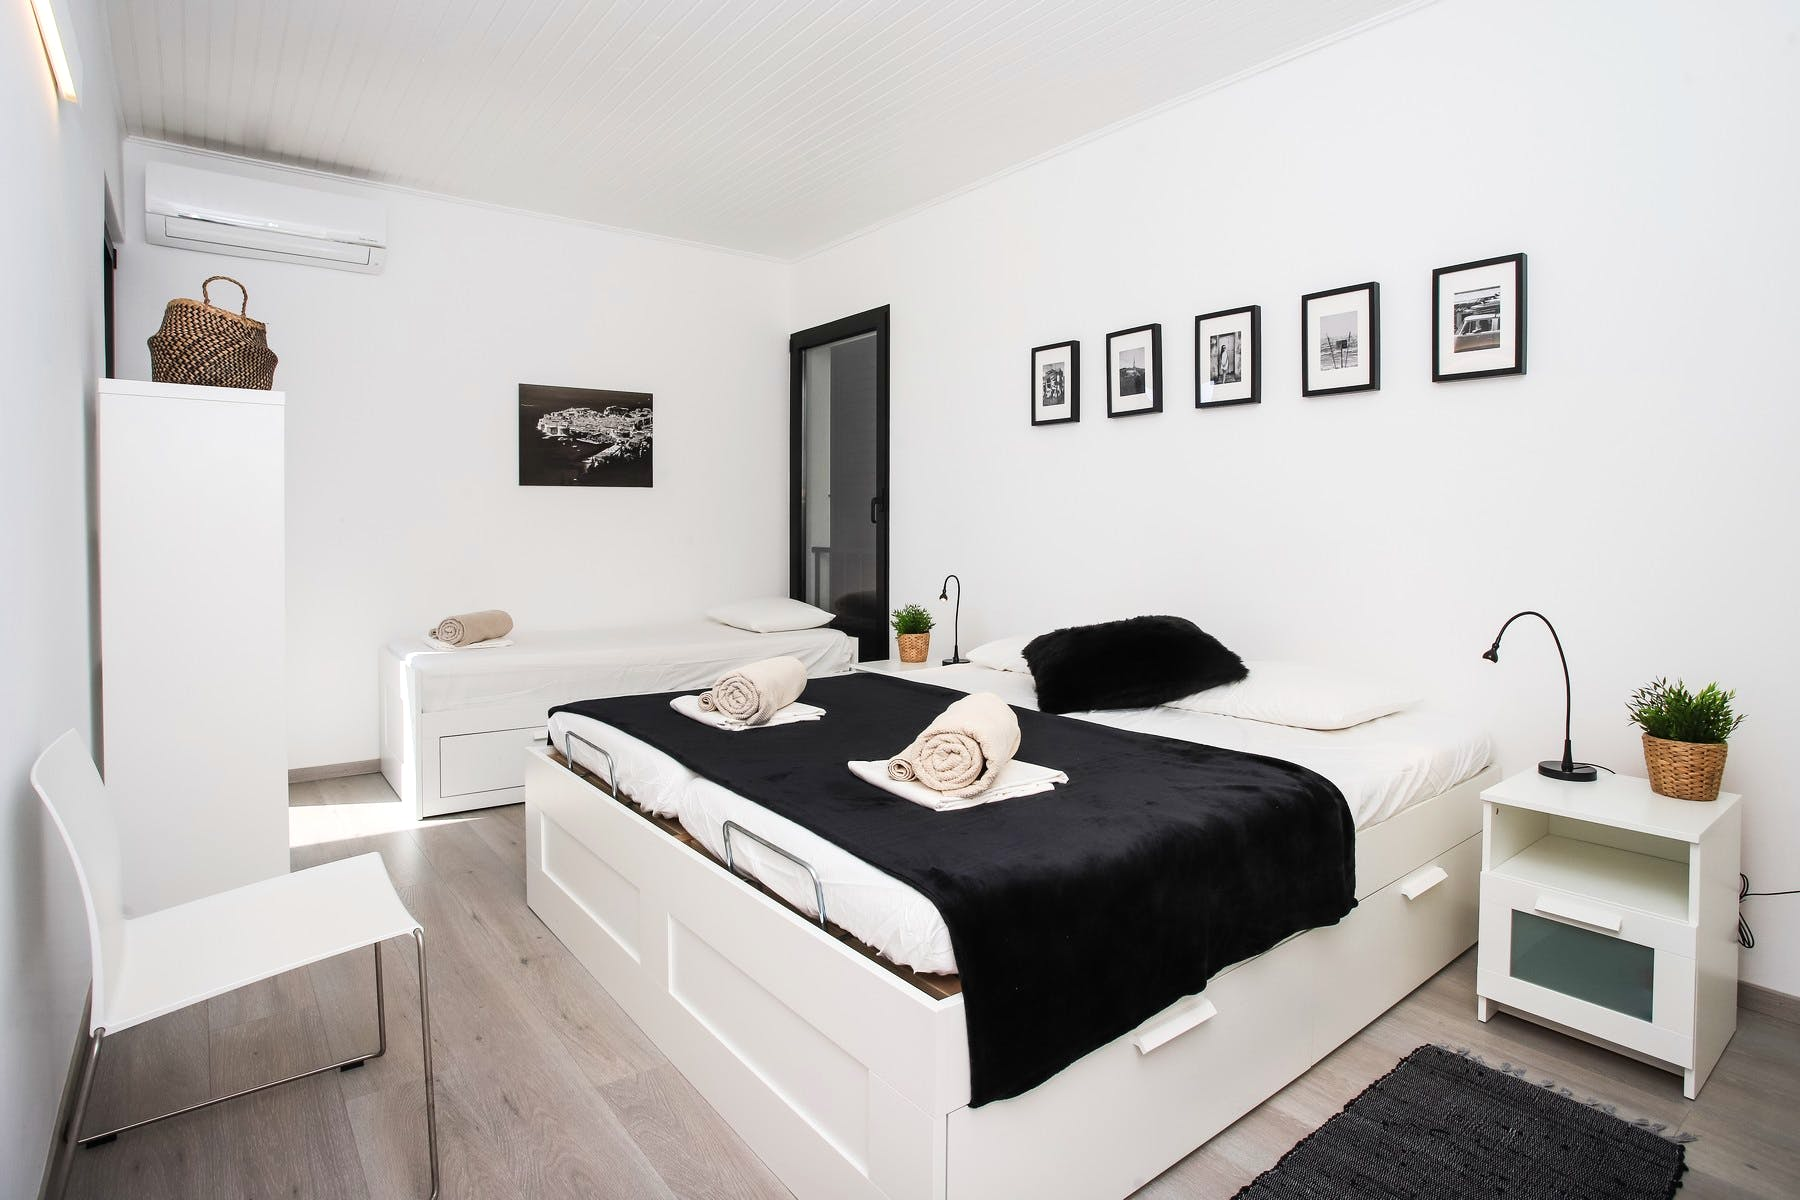 Modern and comfortable bedroom